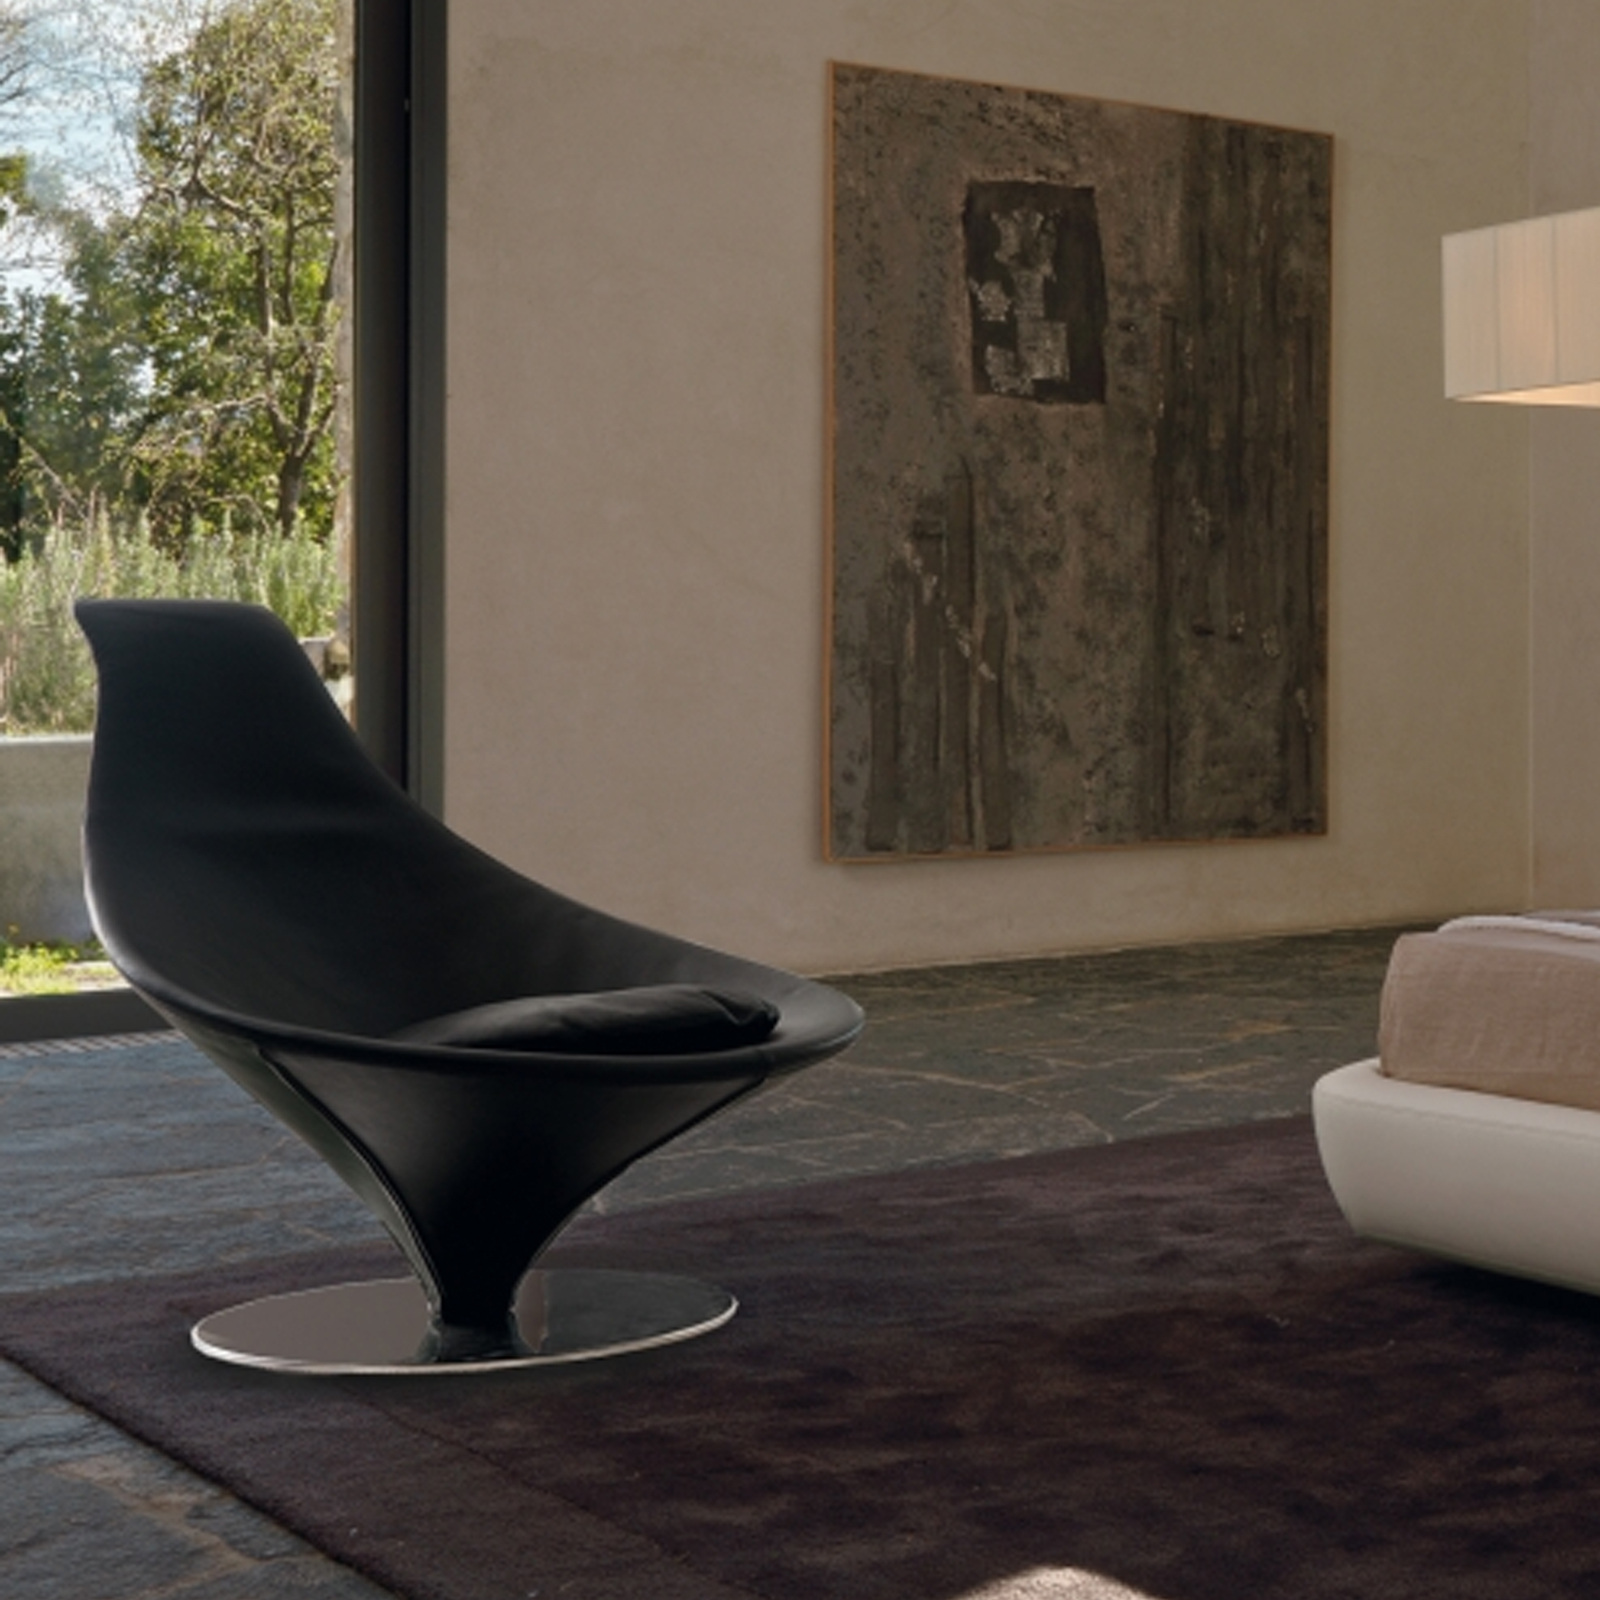 Coco Swivel Chair By Desiree Divani Core Furniture Online